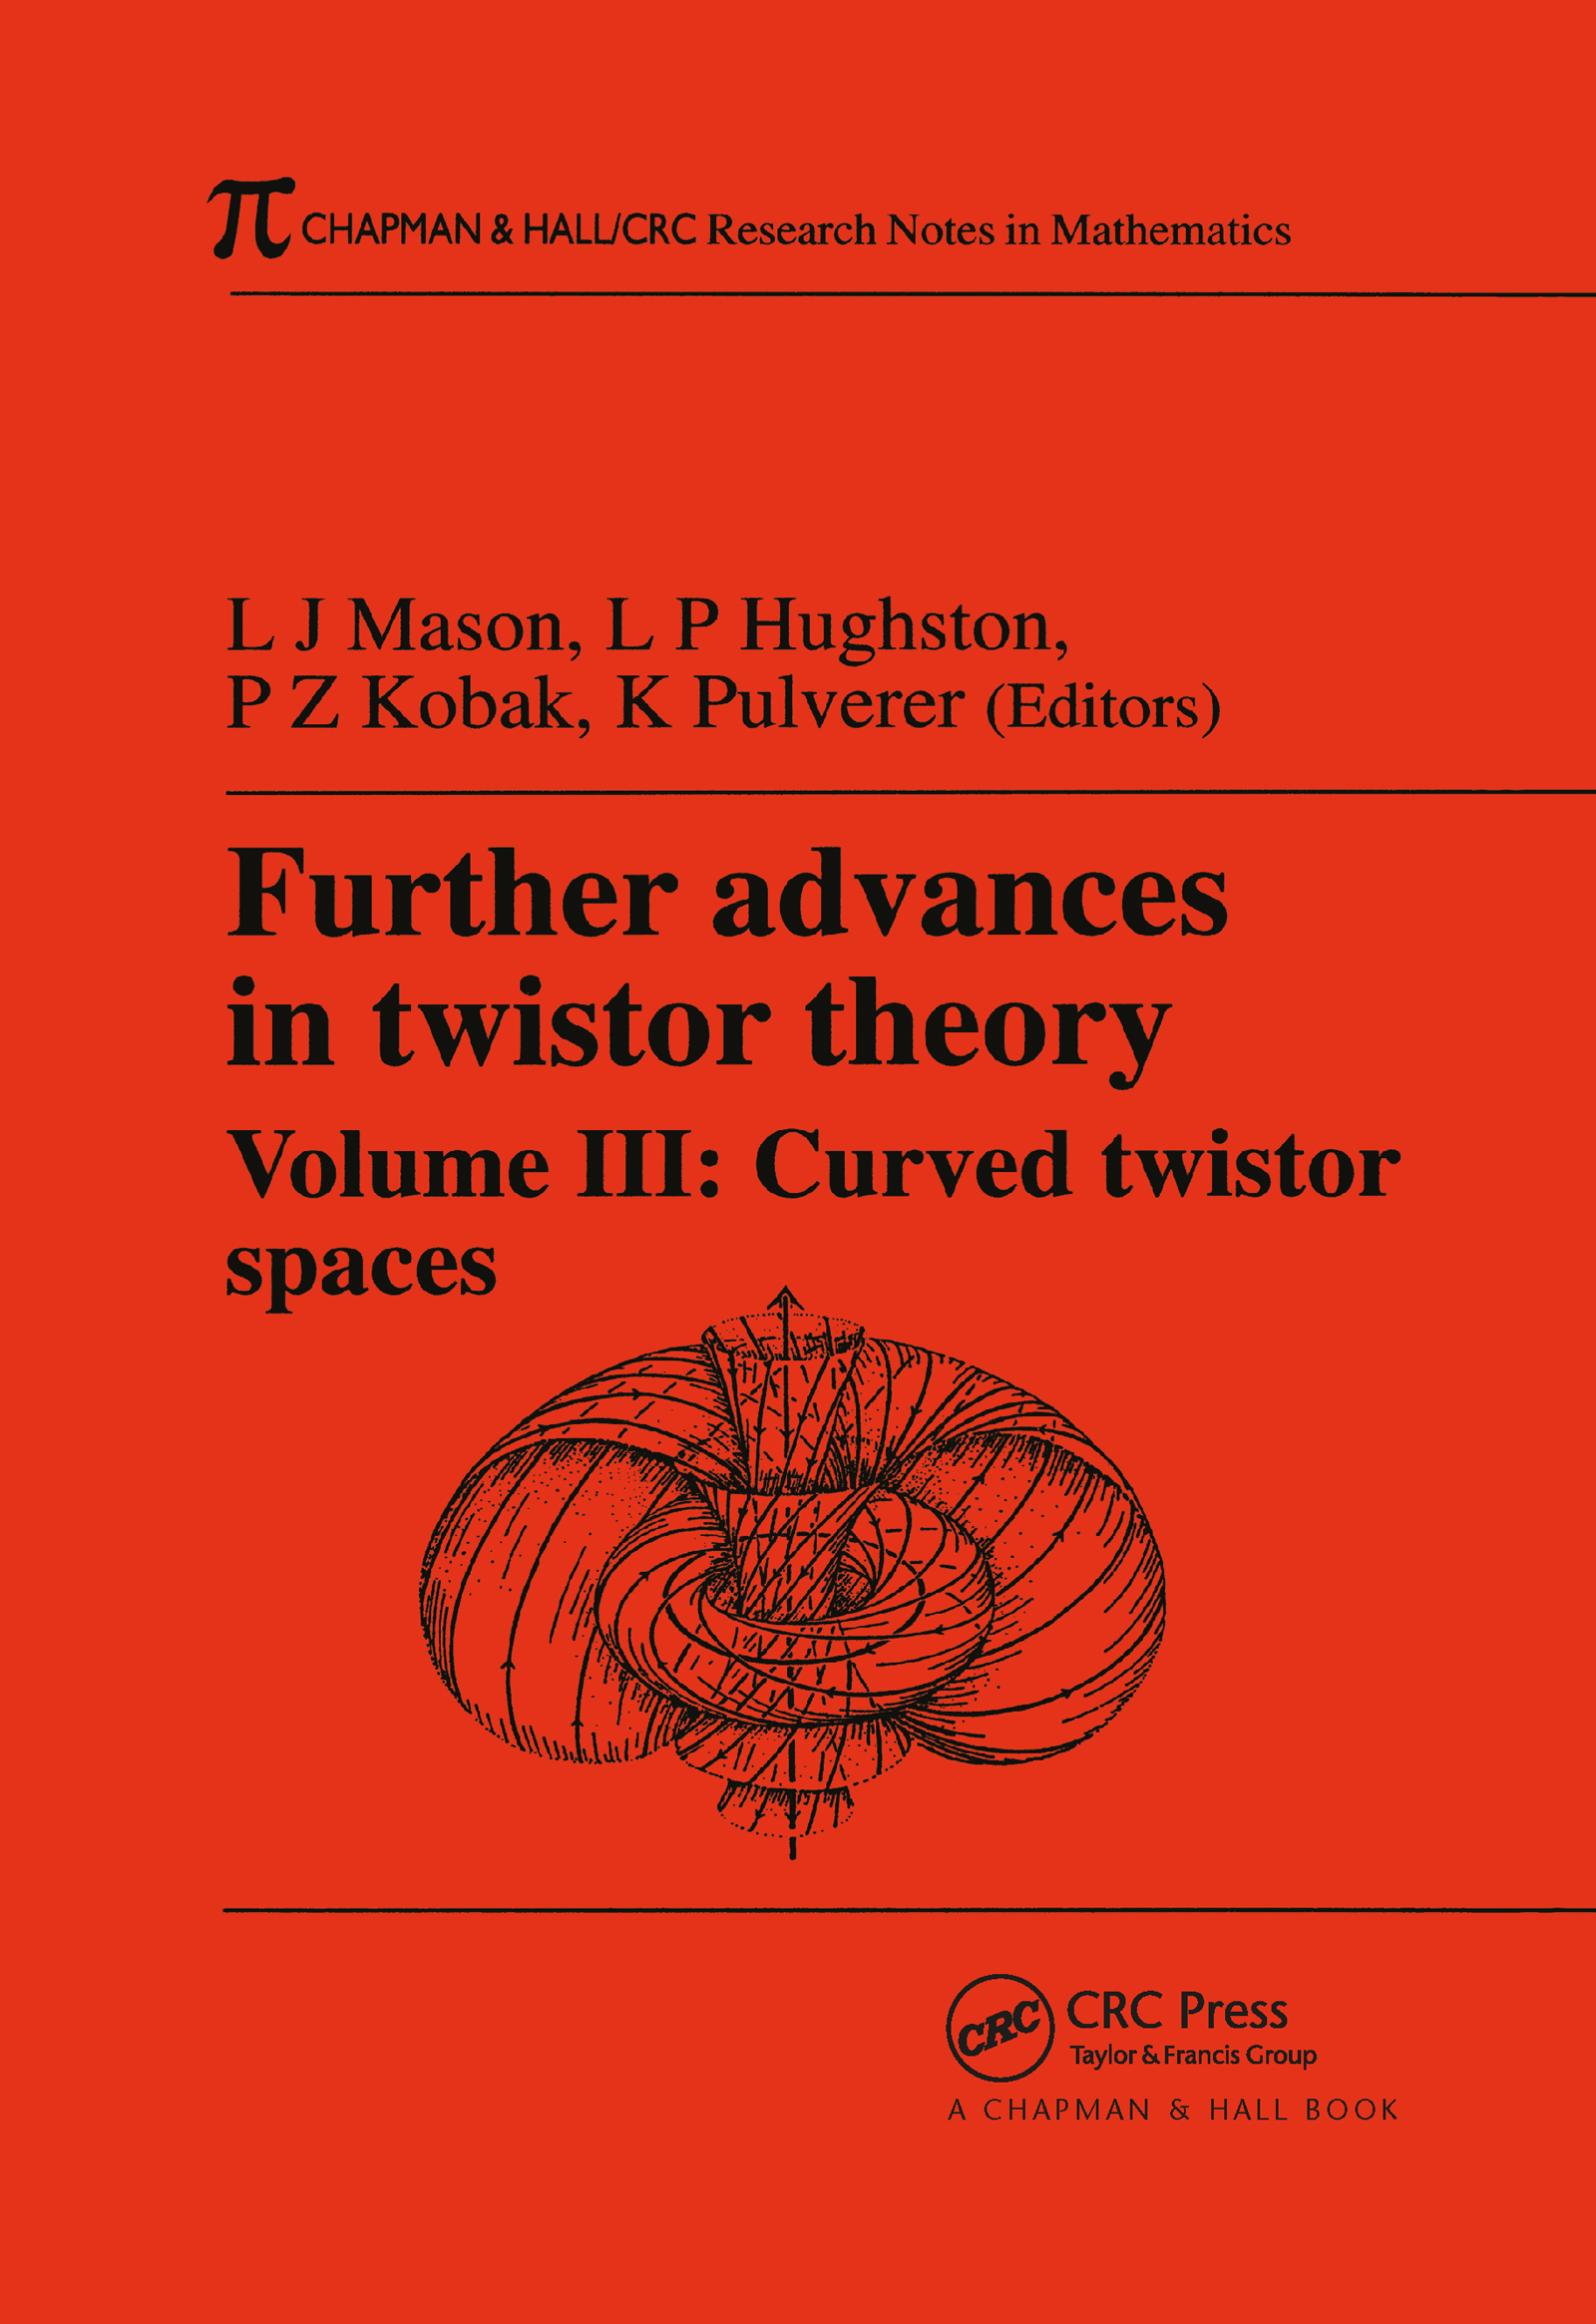 Further Advances in Twistor Theory, Volume III: Curved Twistor Spaces book cover